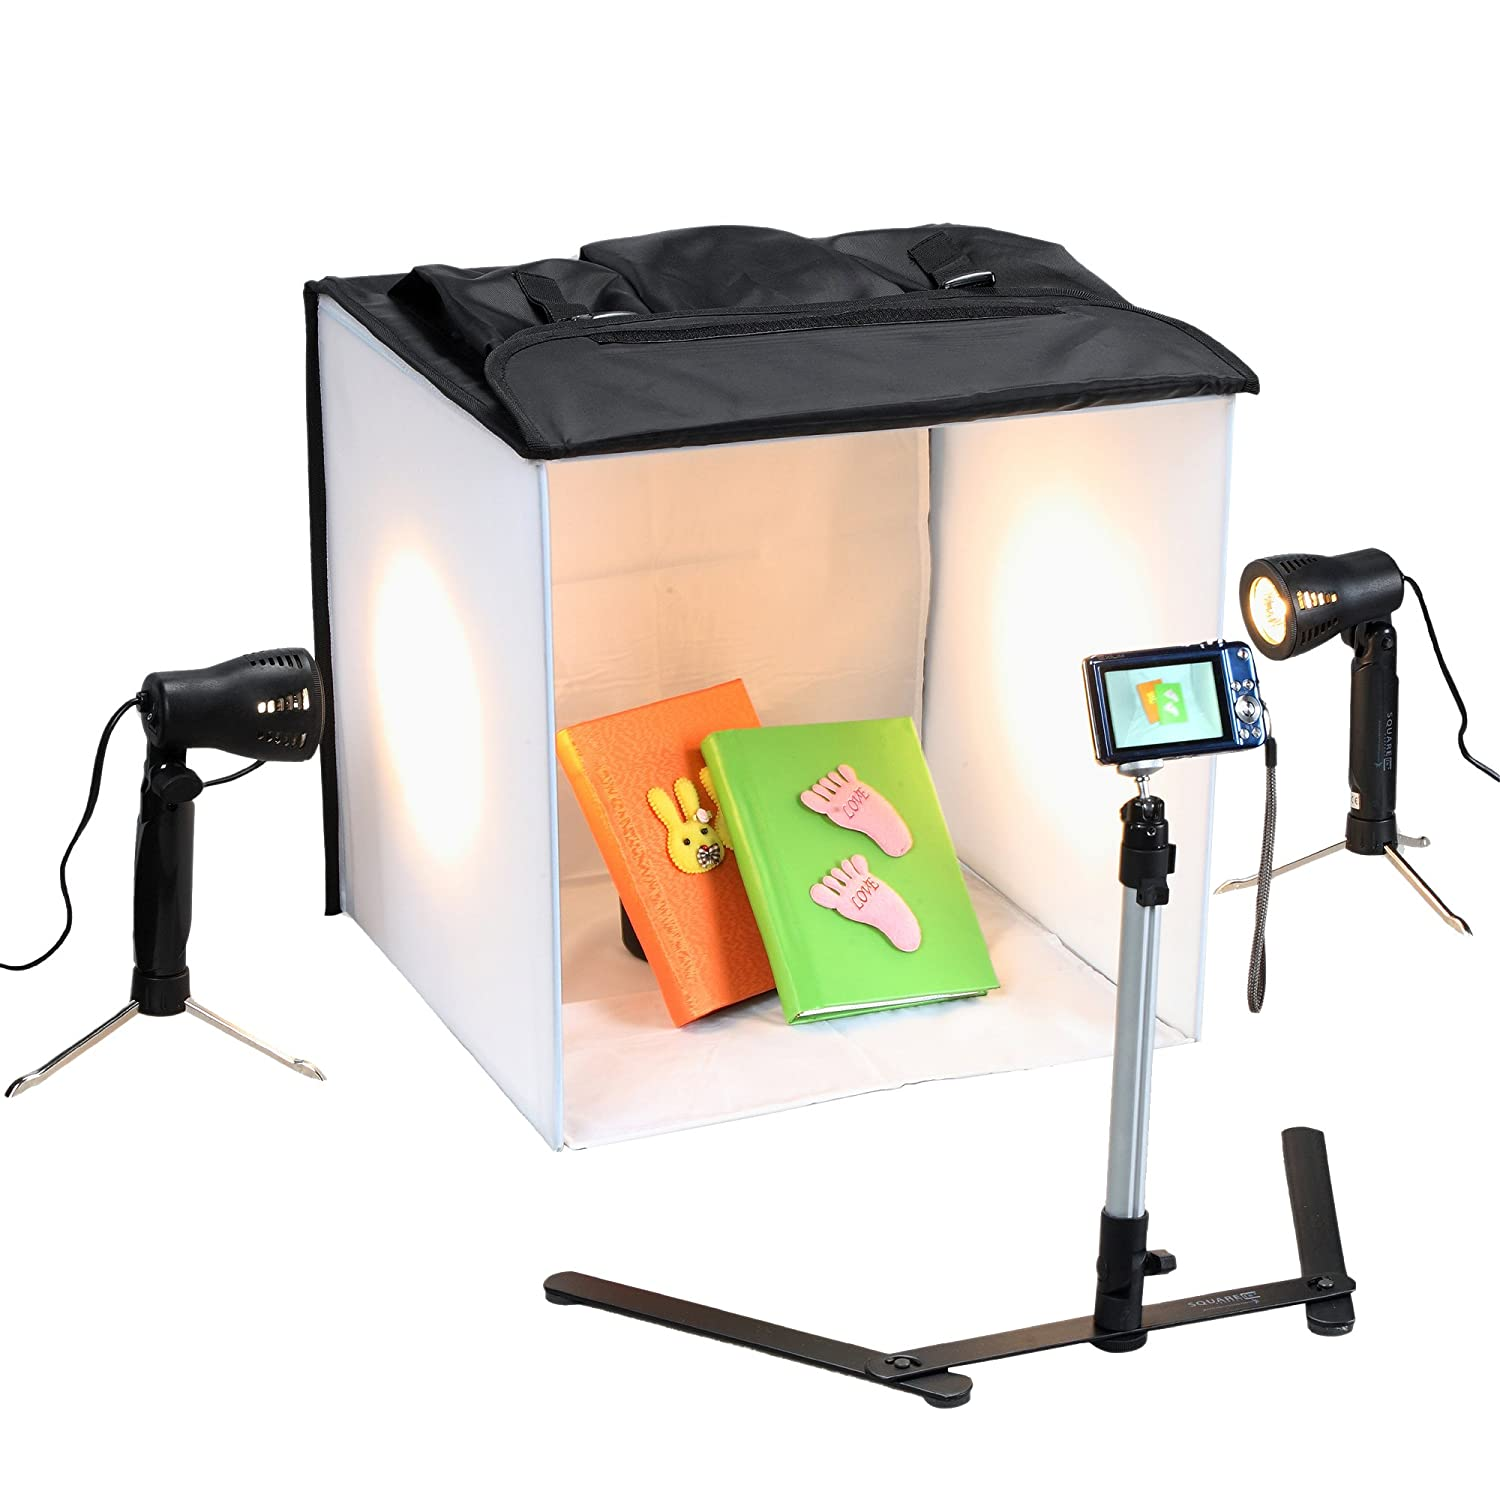 Amazon.com  Square Perfect 3085 SP200 Professional Quality 16-Inch Studio In A Box Light Tent Cube for Quality Photography  Photo Studio Shooting Tents ...  sc 1 st  Amazon.com & Amazon.com : Square Perfect 3085 SP200 Professional Quality 16 ...